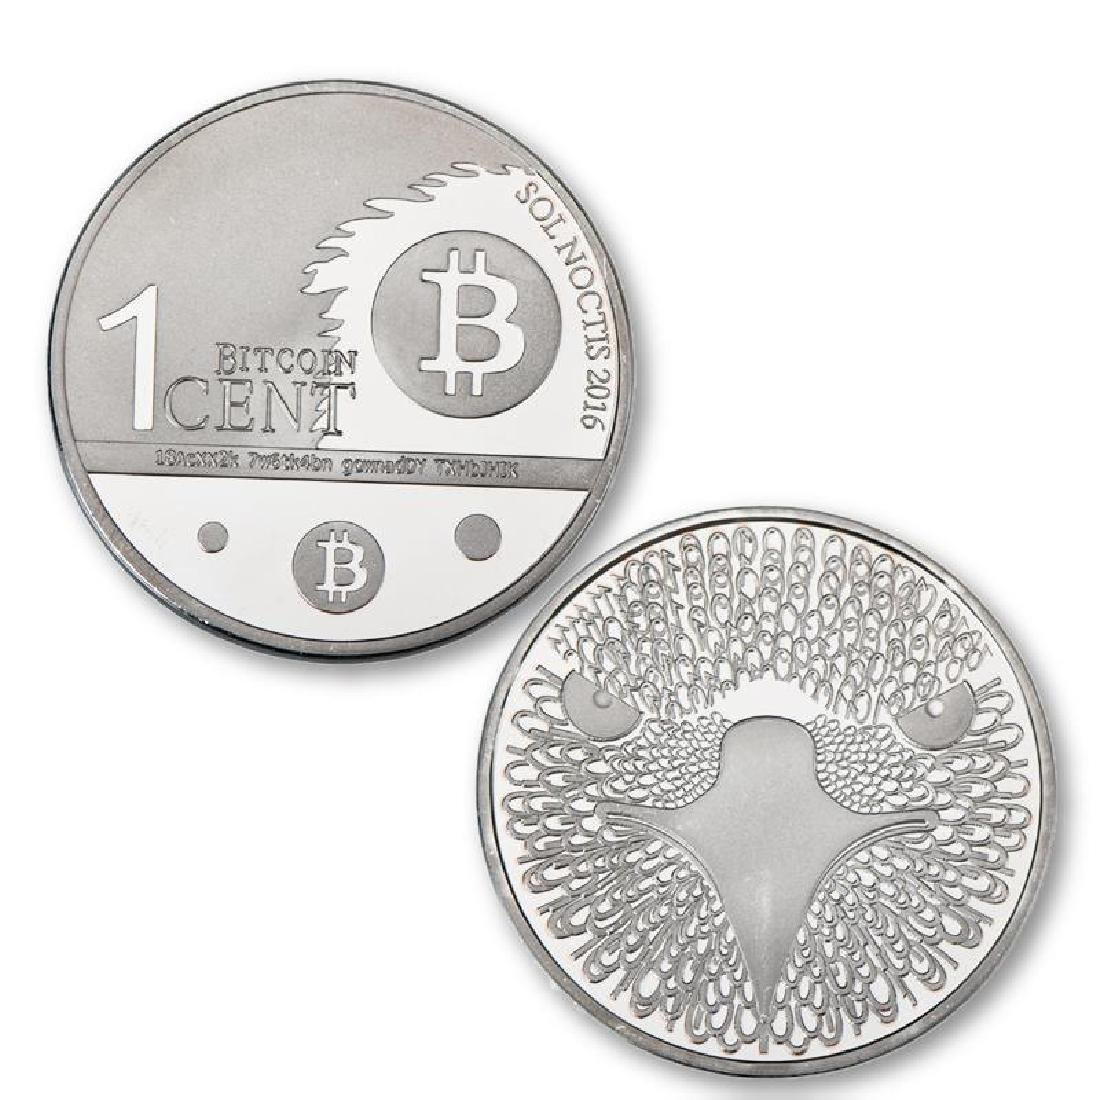 4 Bitcoin Silver and Gold Clad Collectible Coins - 5